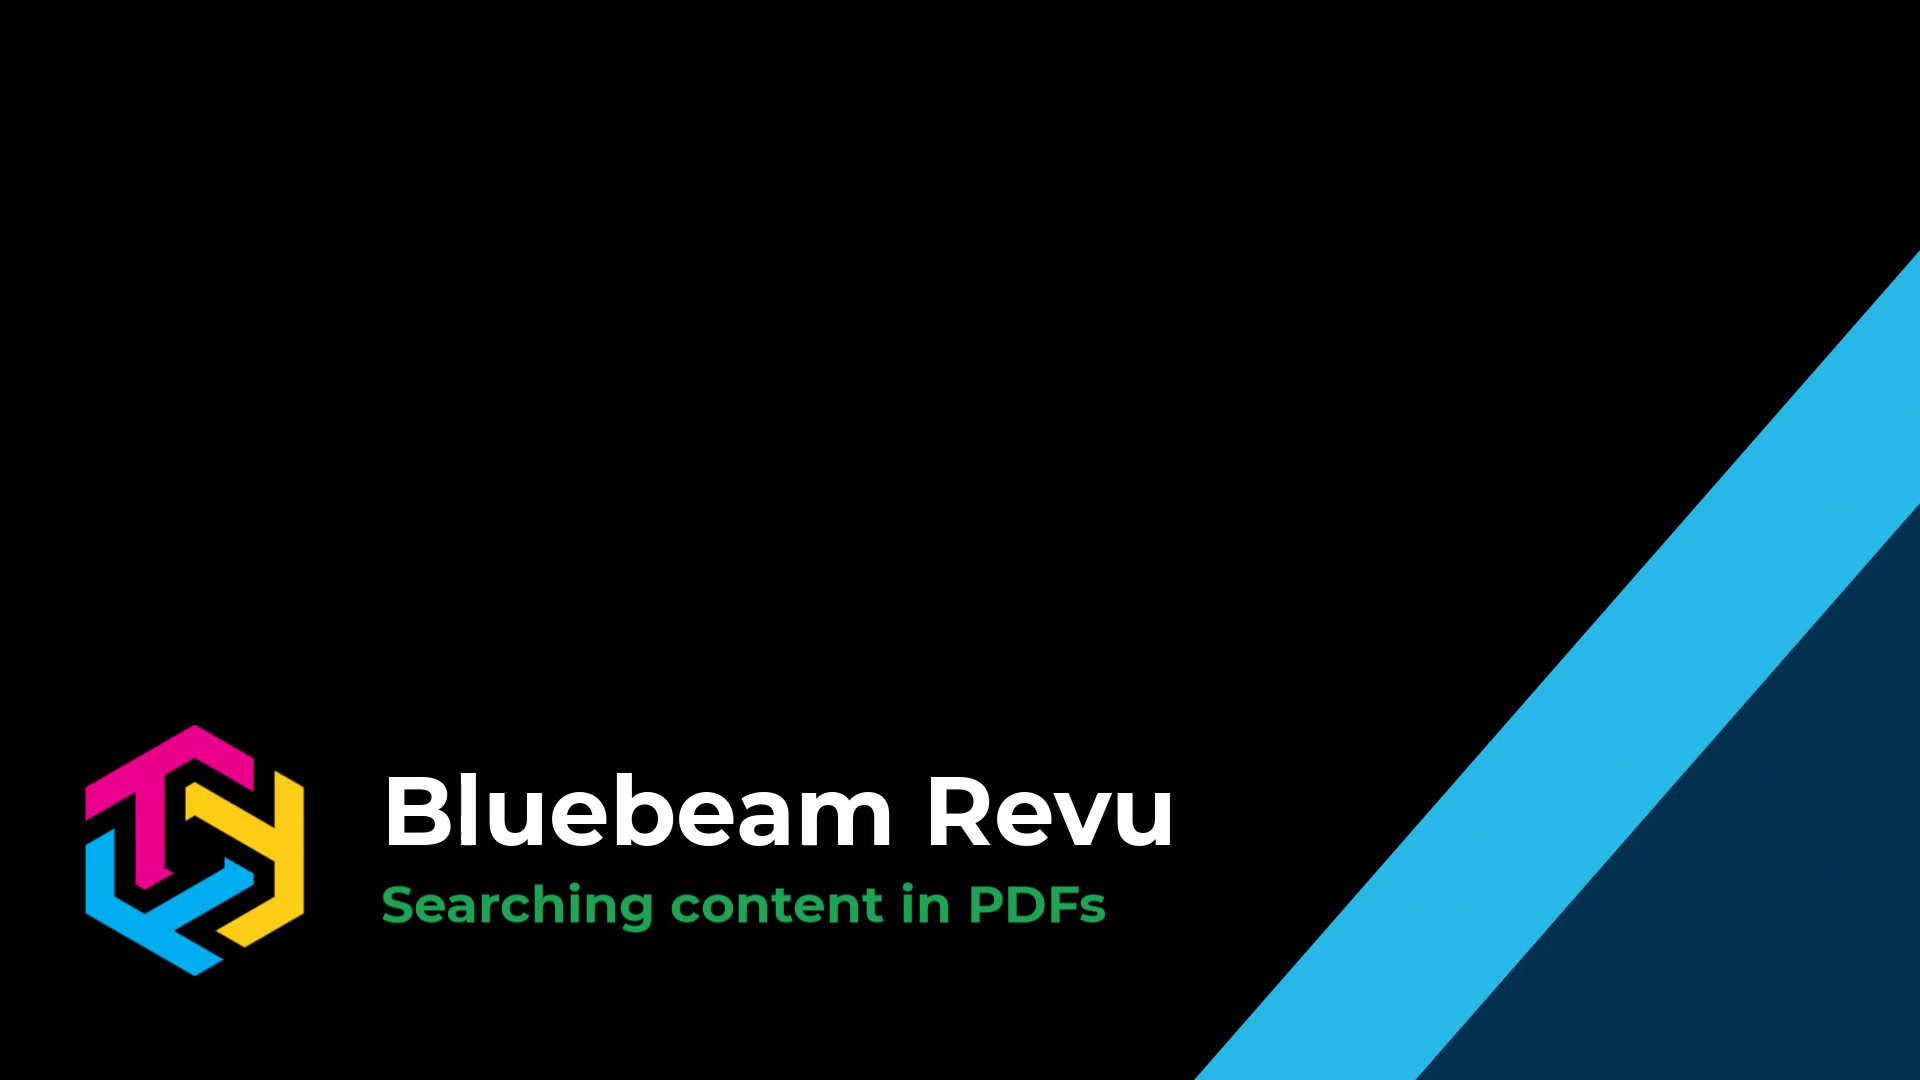 Searching PDFs in Bluebeam Revu 2019